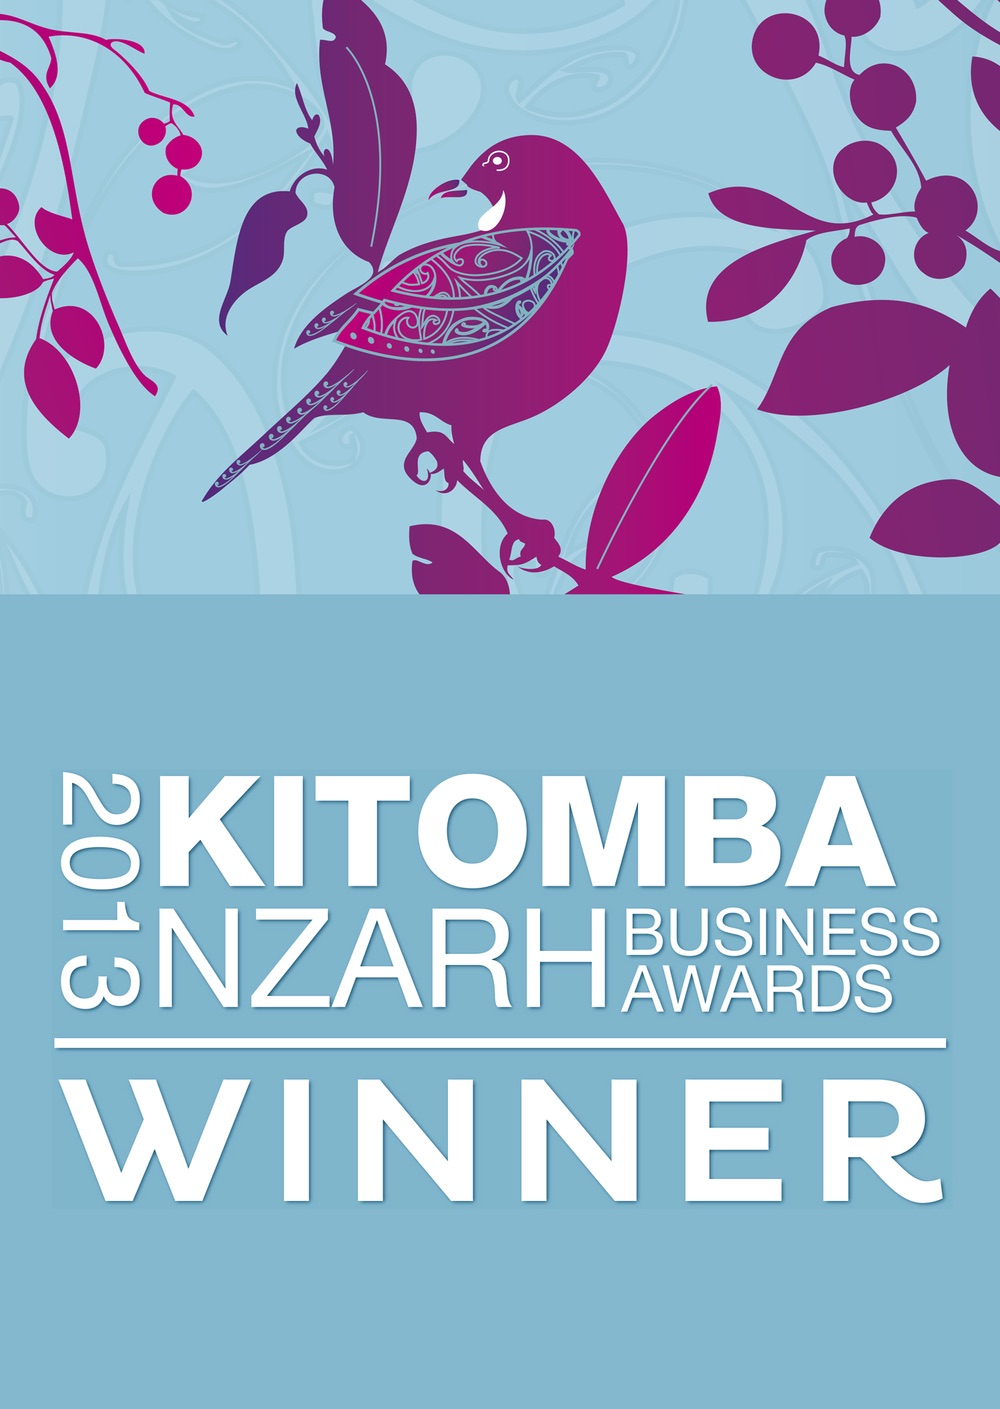 2013-Kitomba-NZARH-Awards_A4-Winner-Poster-(1).jpg